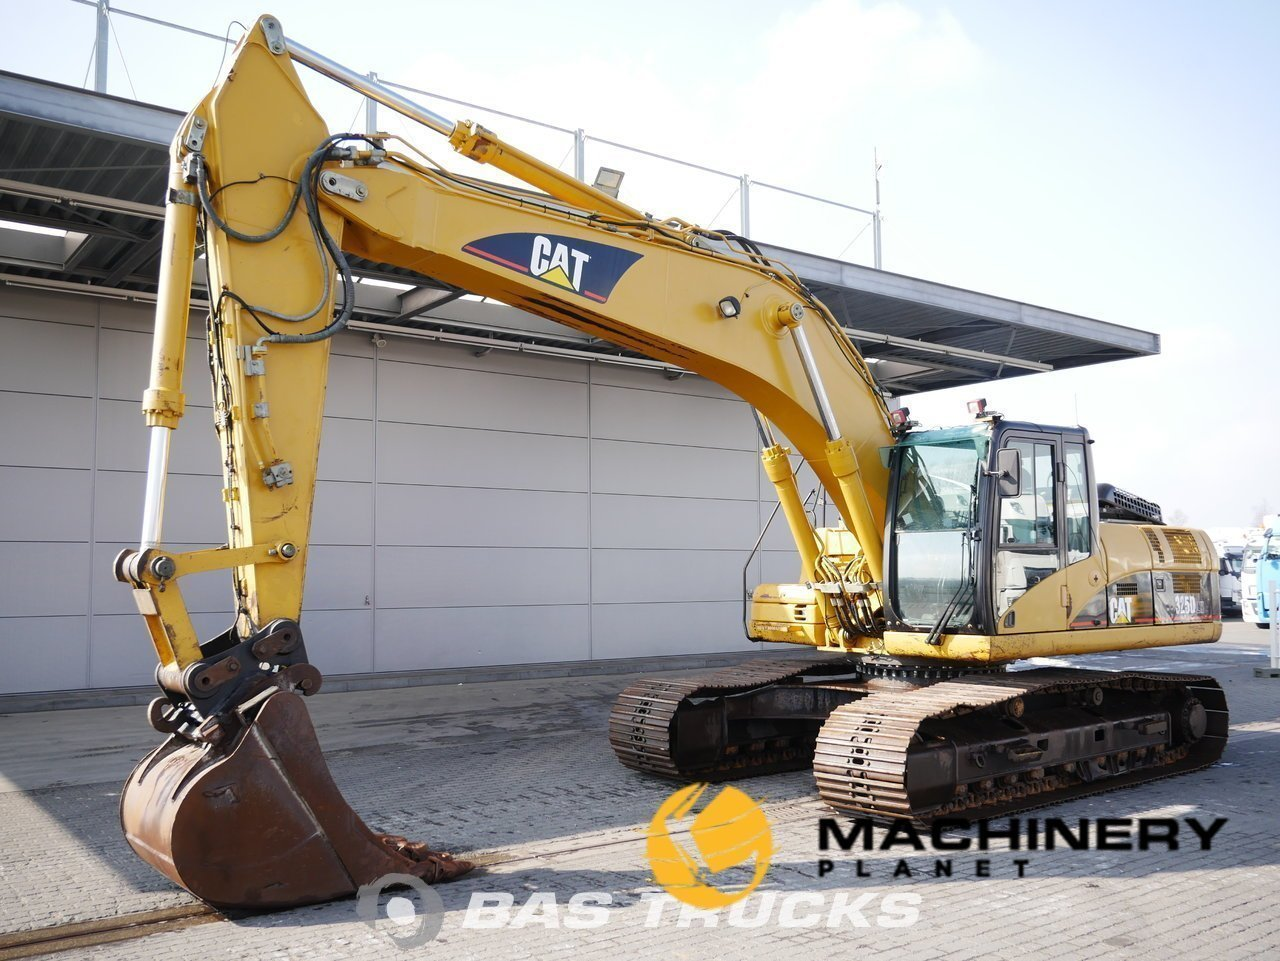 Used-Construction-equipment-Caterpillar-325DLN-Track-2007_148348_1-1554099749008_5ca1ae2501e49-1.jpg